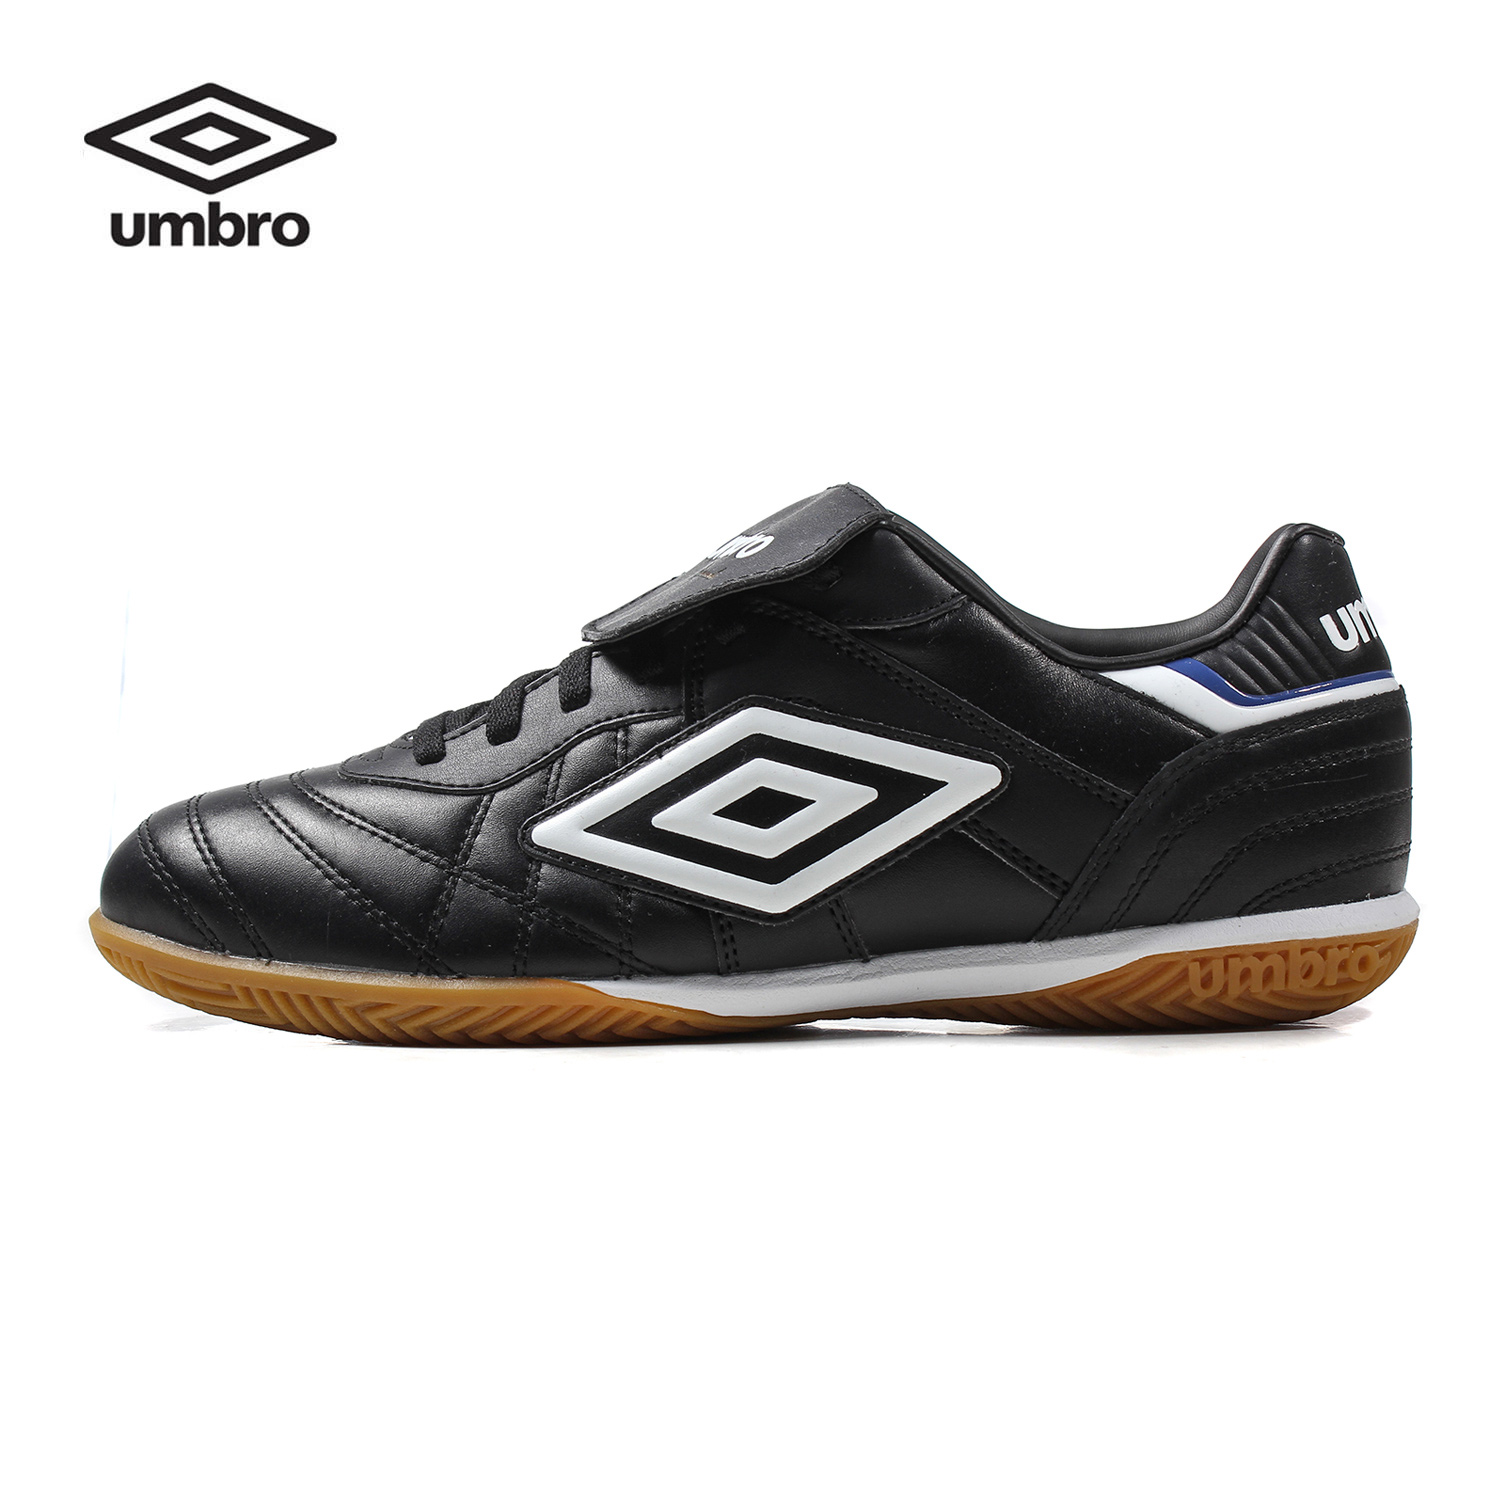 Umbro Men  Soccer Shoes Sports Sneaker Indoor Soccer Boots Turf Shoes Leather Lace-up Professional Football Shoes Umbro2016 tênis masculino lançamento 2019